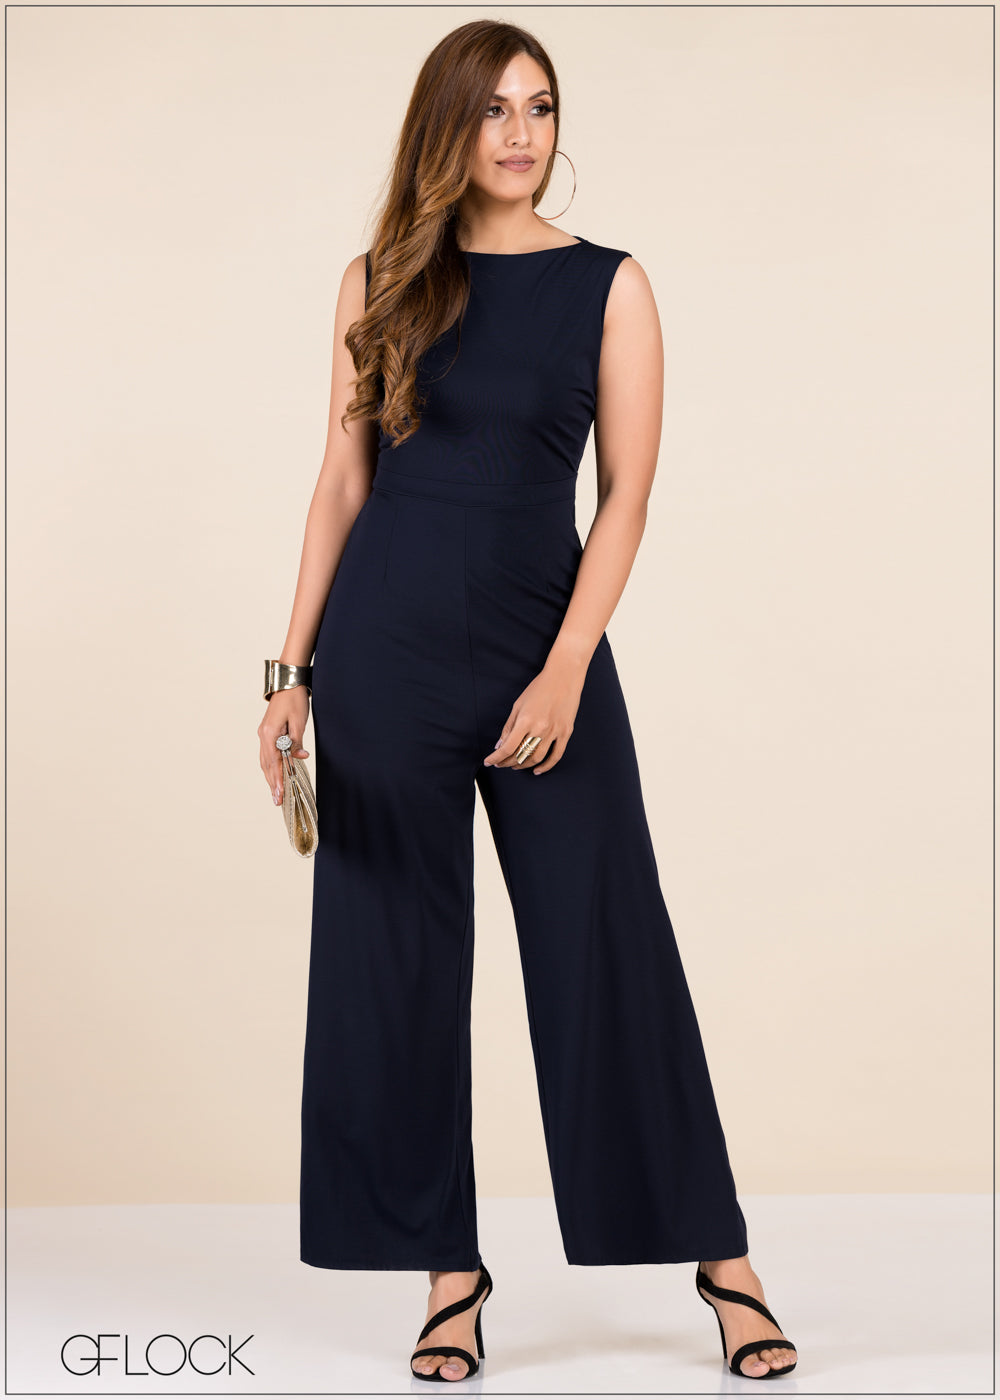 Boat Neck Jumpsuit - GFLOCK.LK